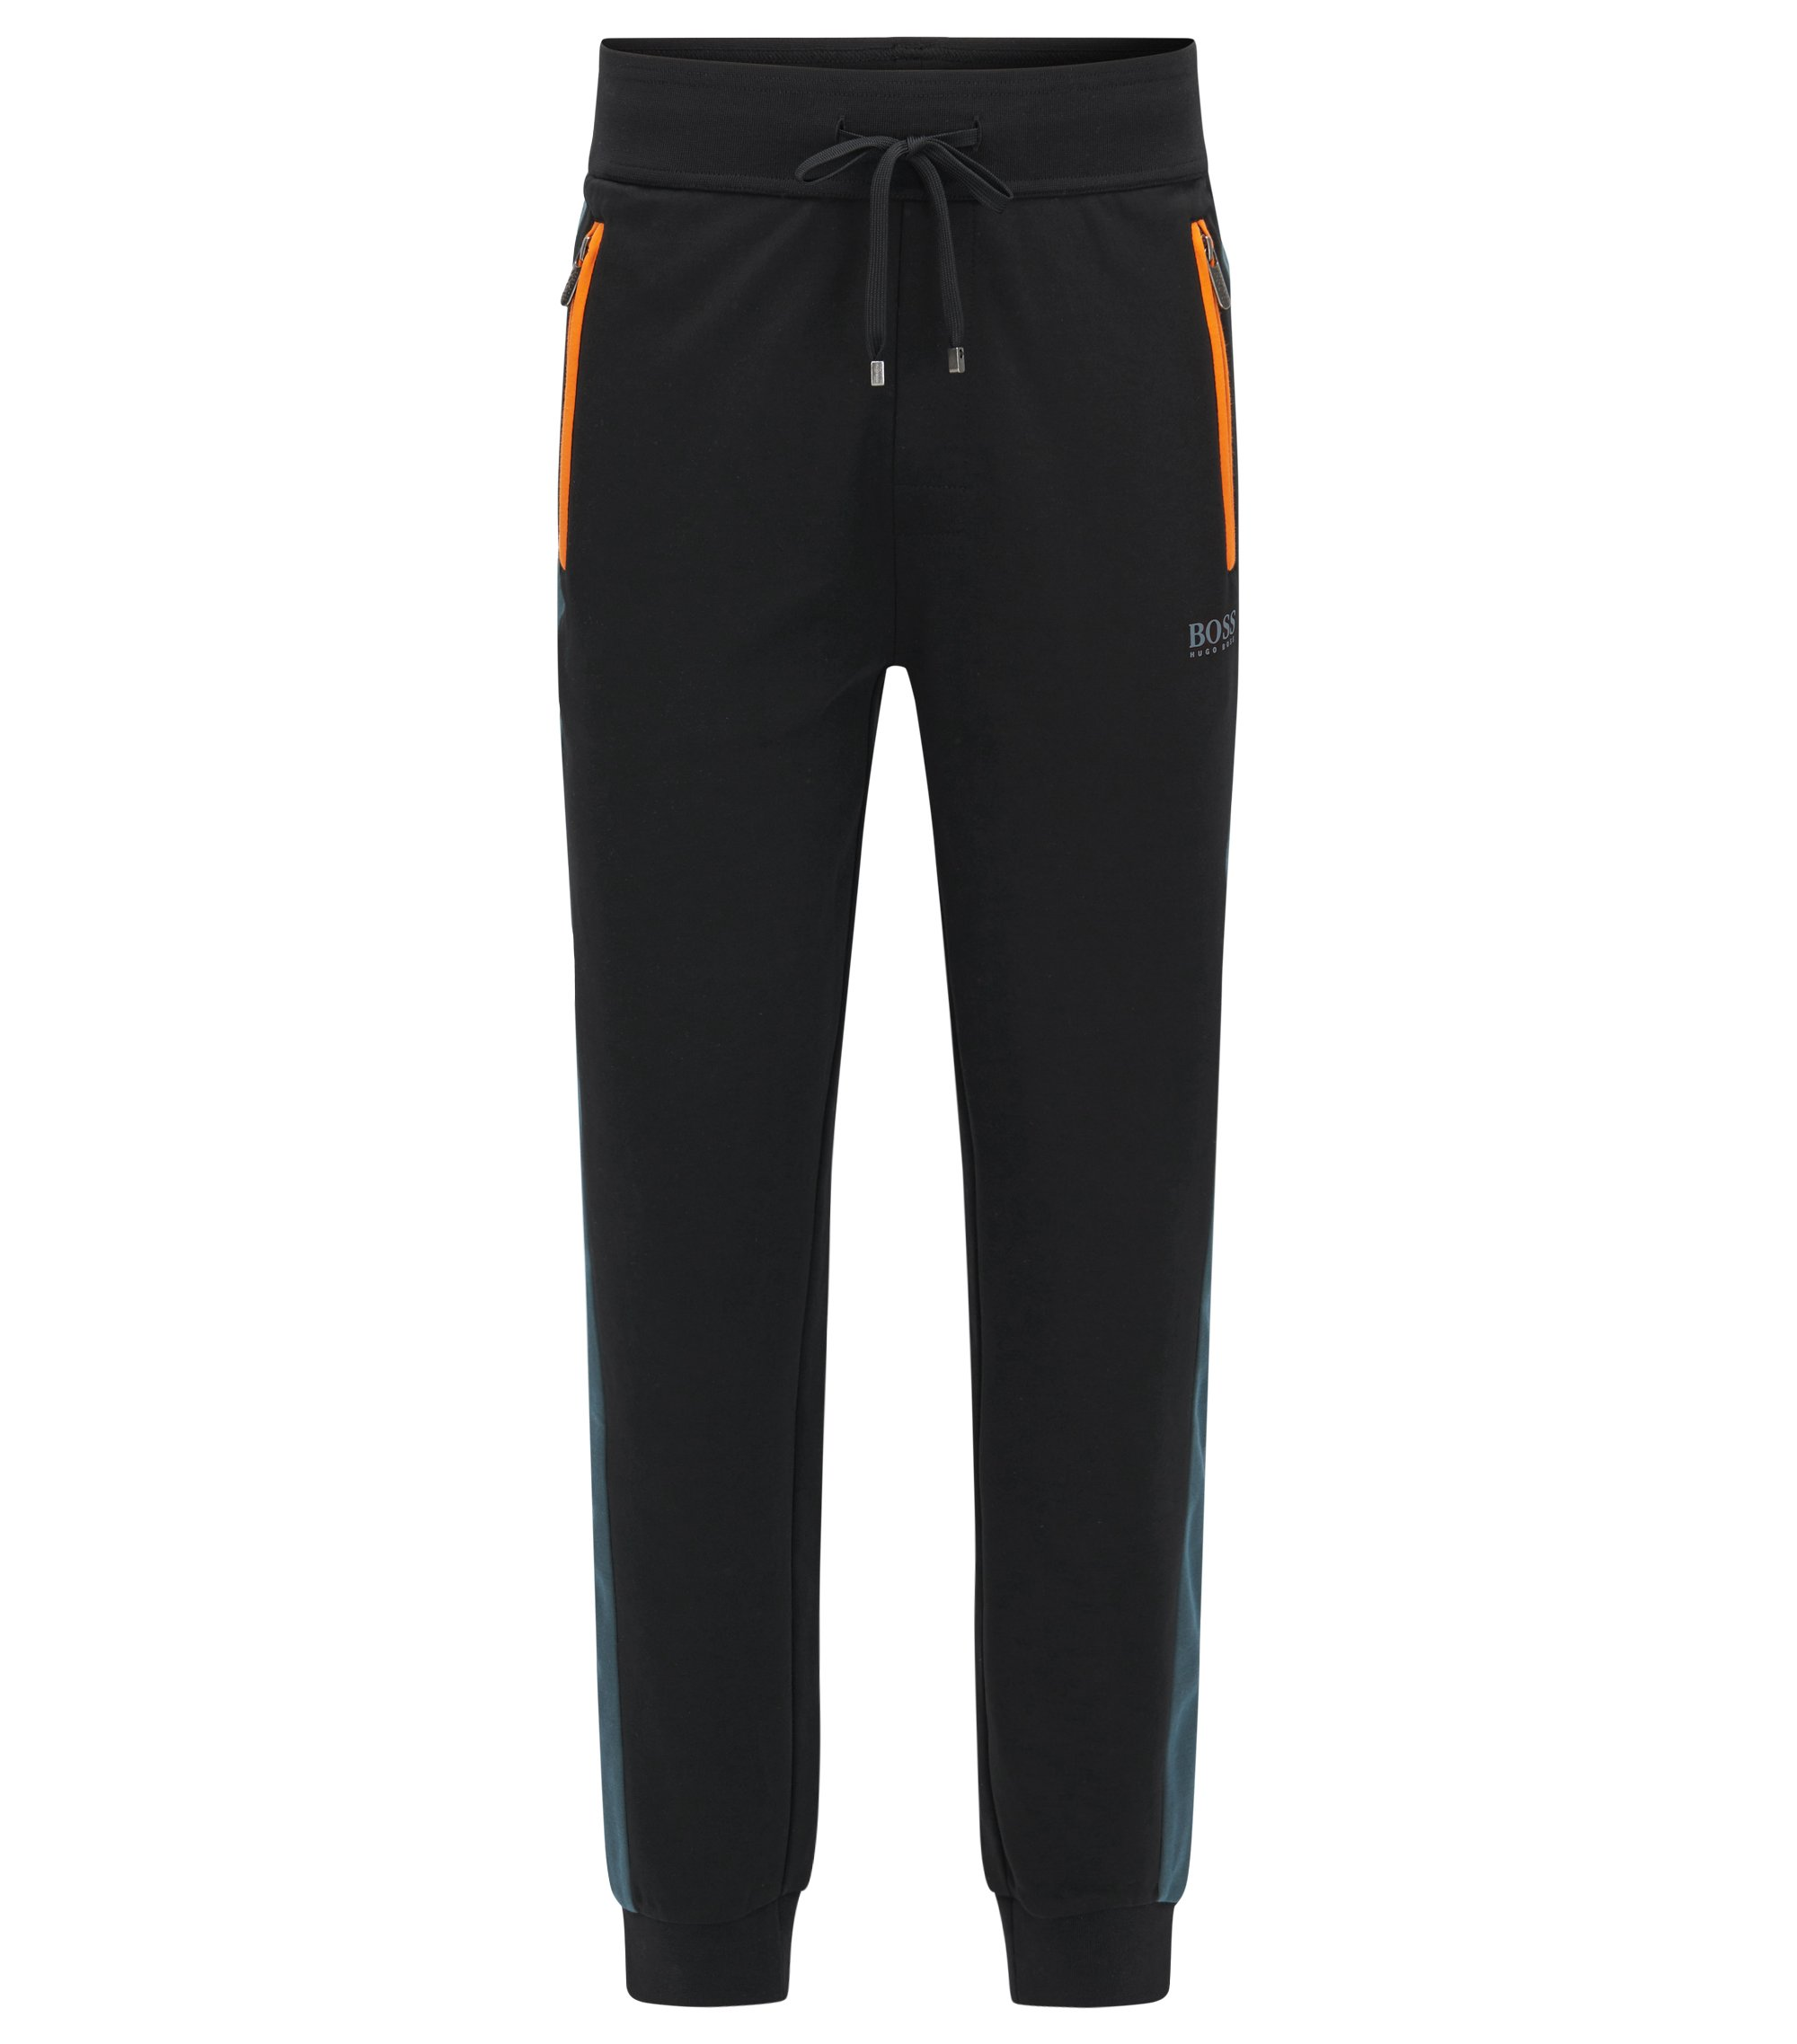 Cuffed jogging bottoms in a cotton-blend pique with contrast accents, Black